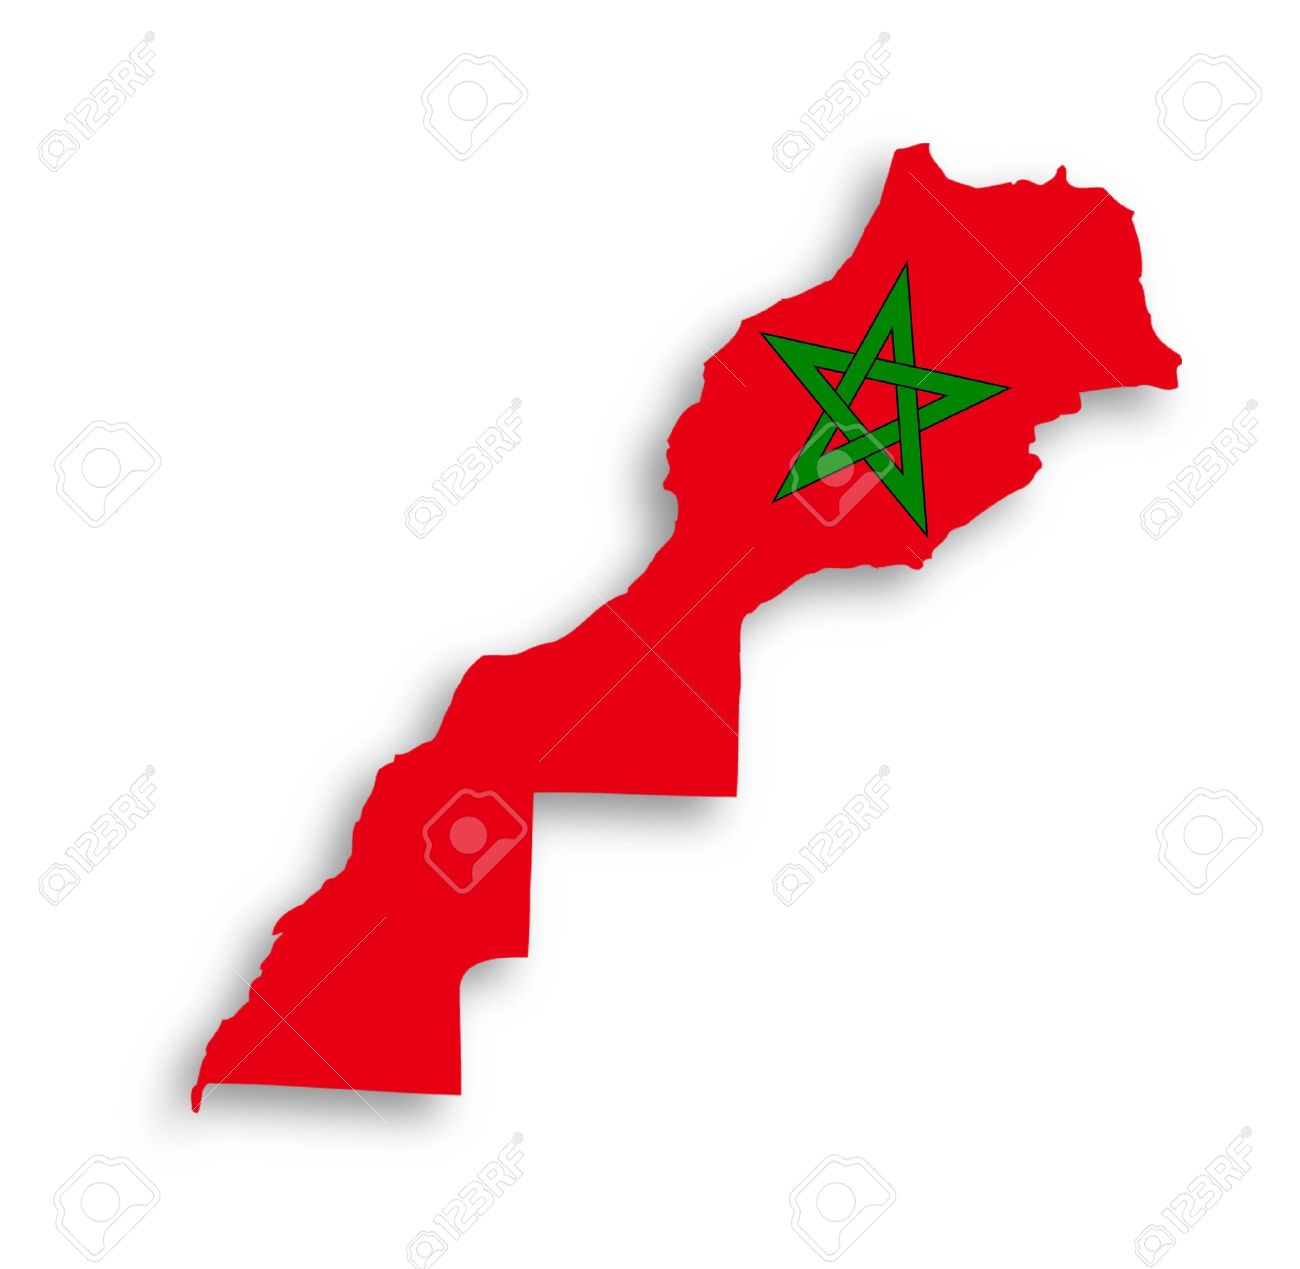 Morocco map with the flag inside, isolated Stock Photo - 17734178